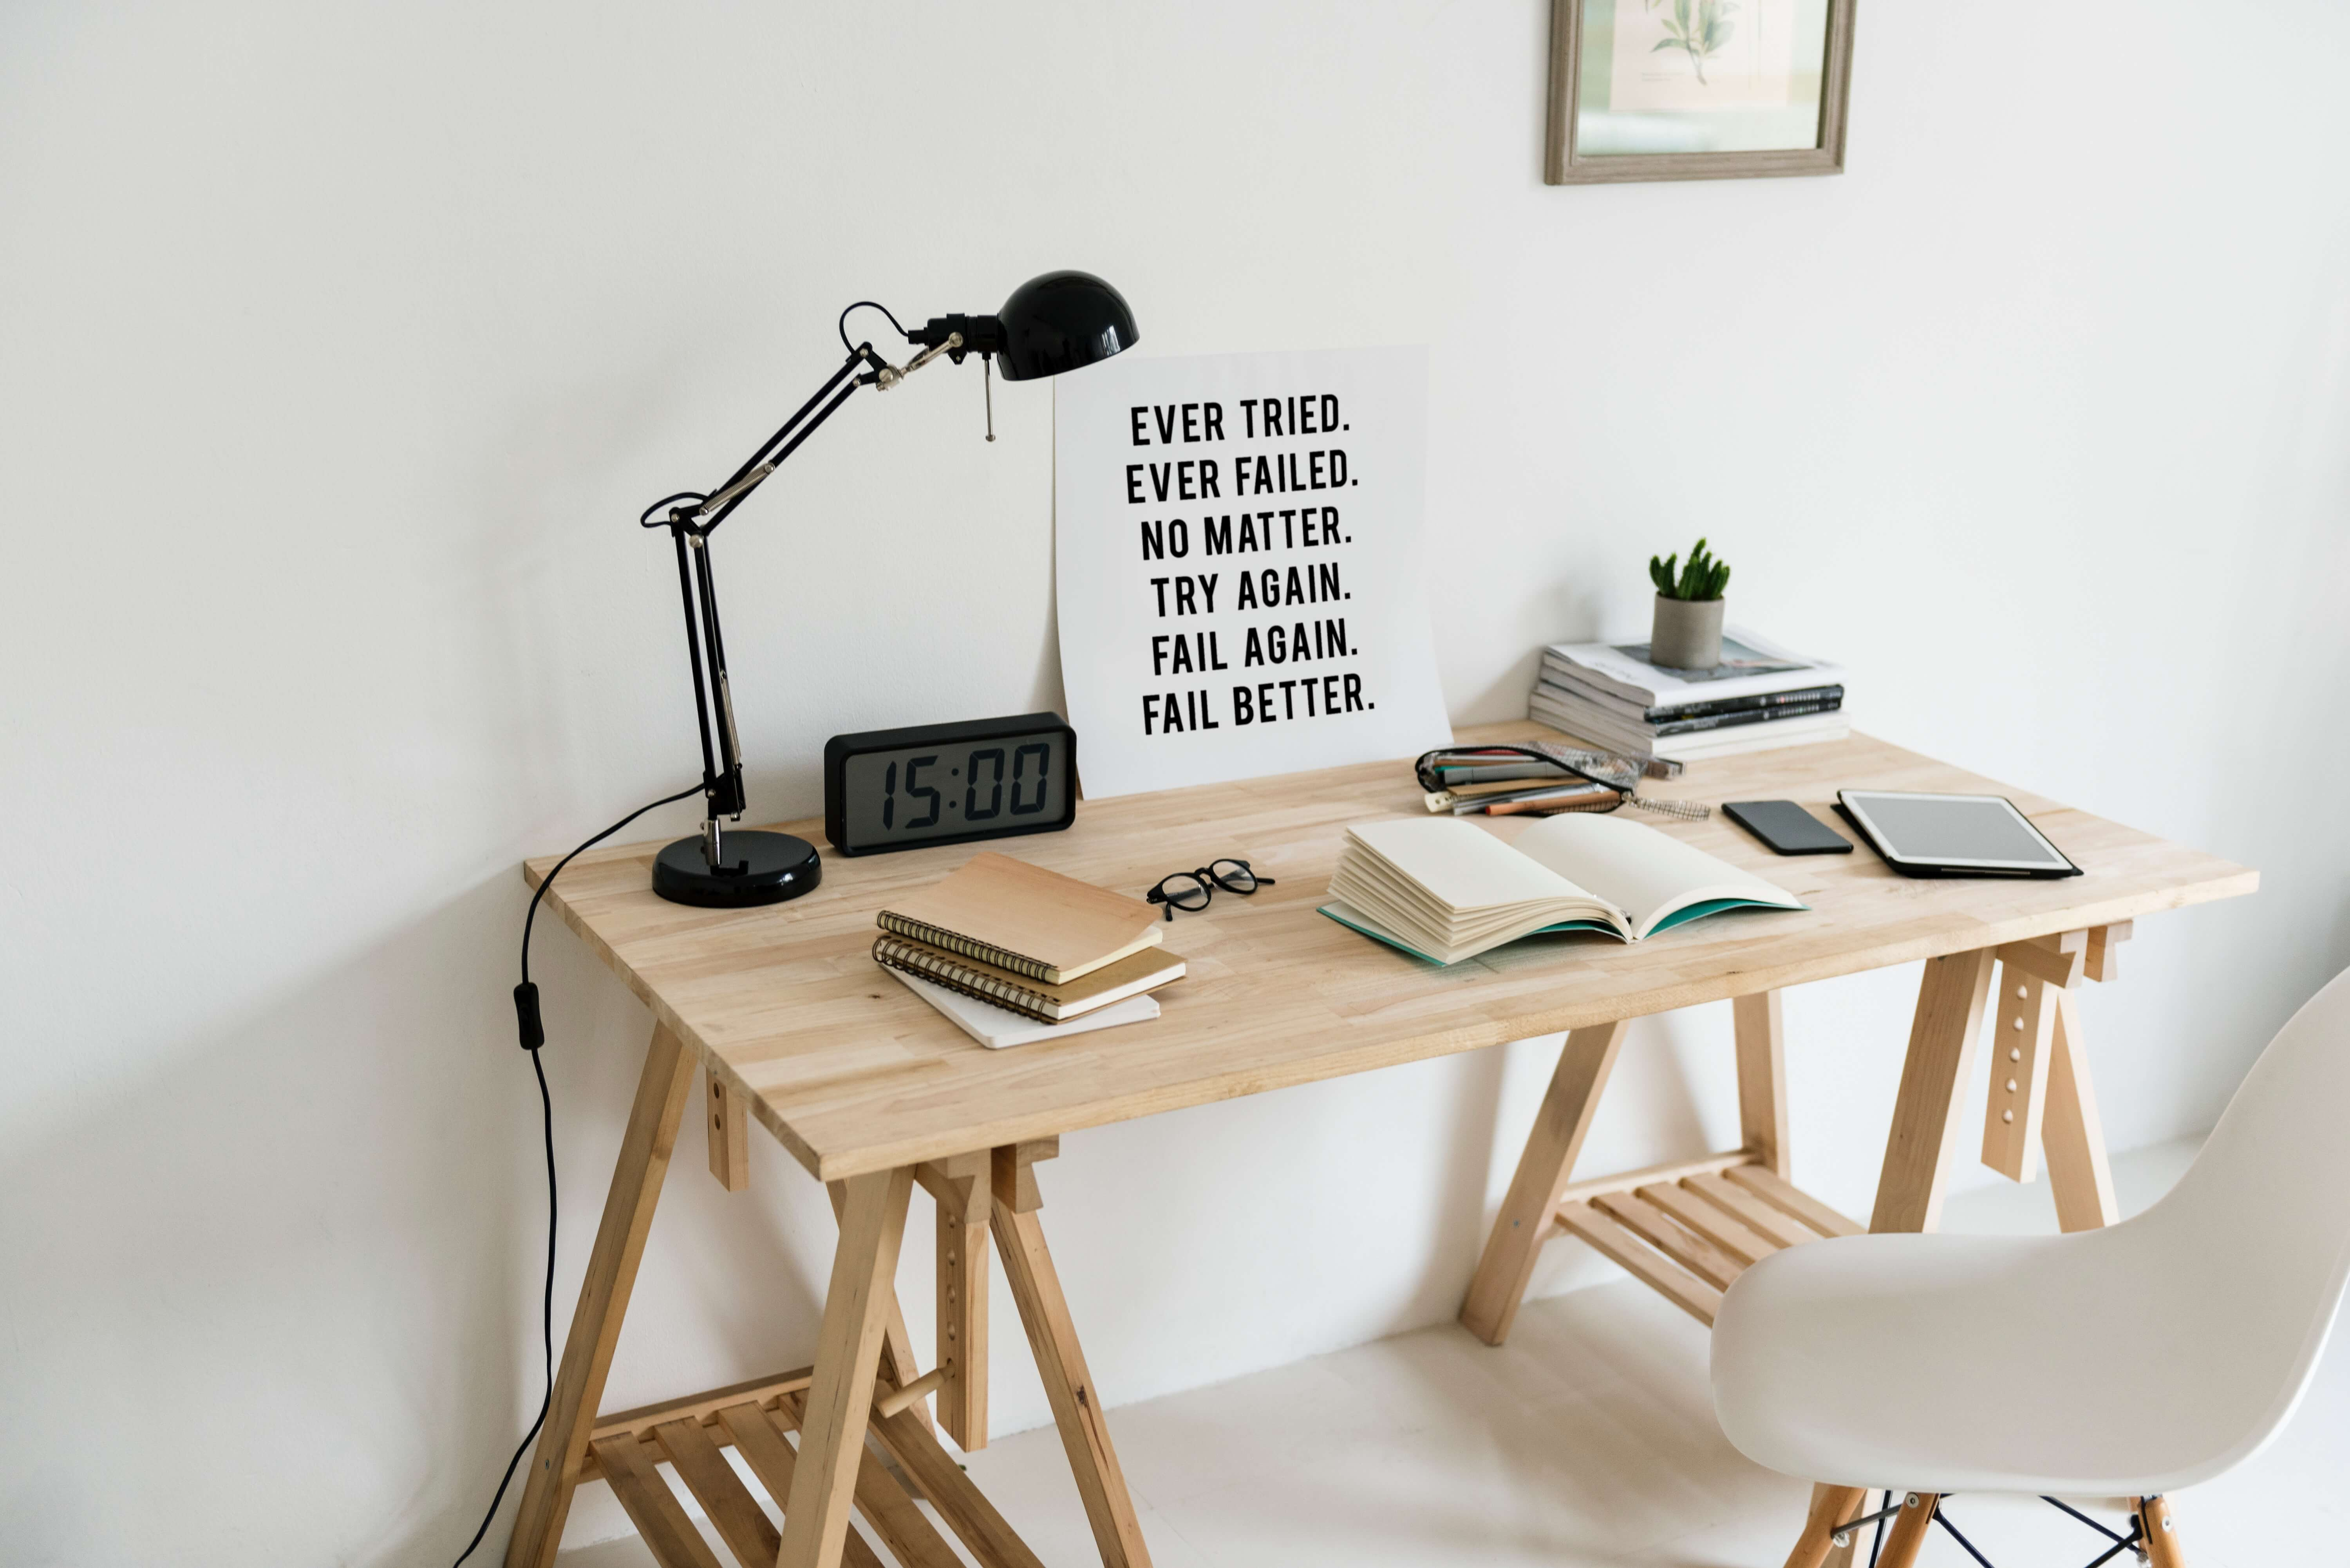 neat desk with a motivational print